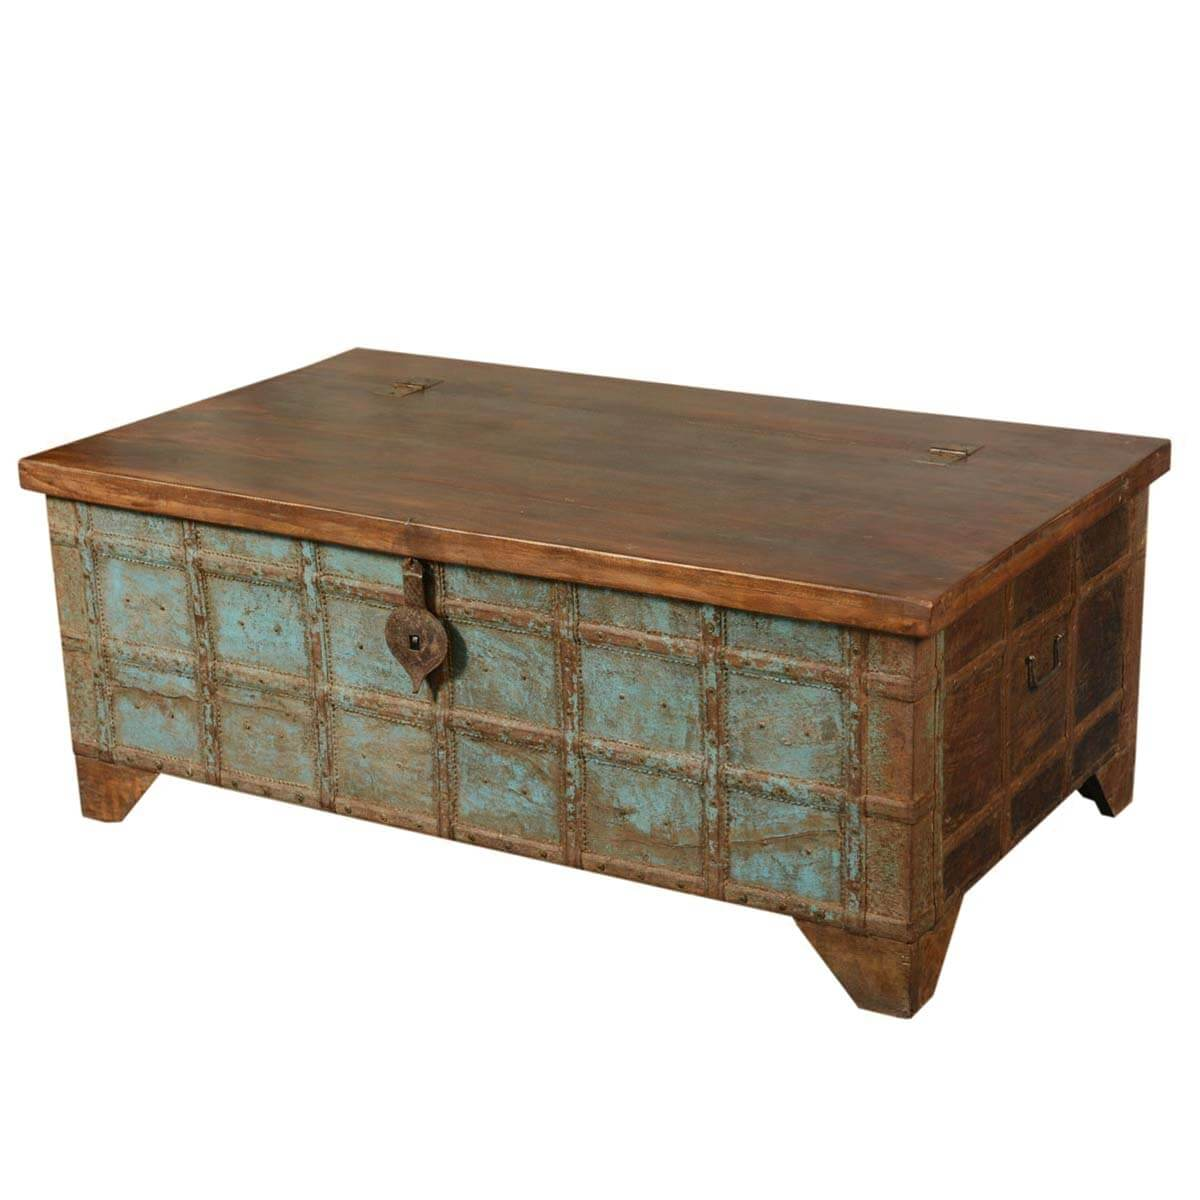 captain39s stash reclaimed wood coffee table storage chest With reclaimed wood coffee table with storage